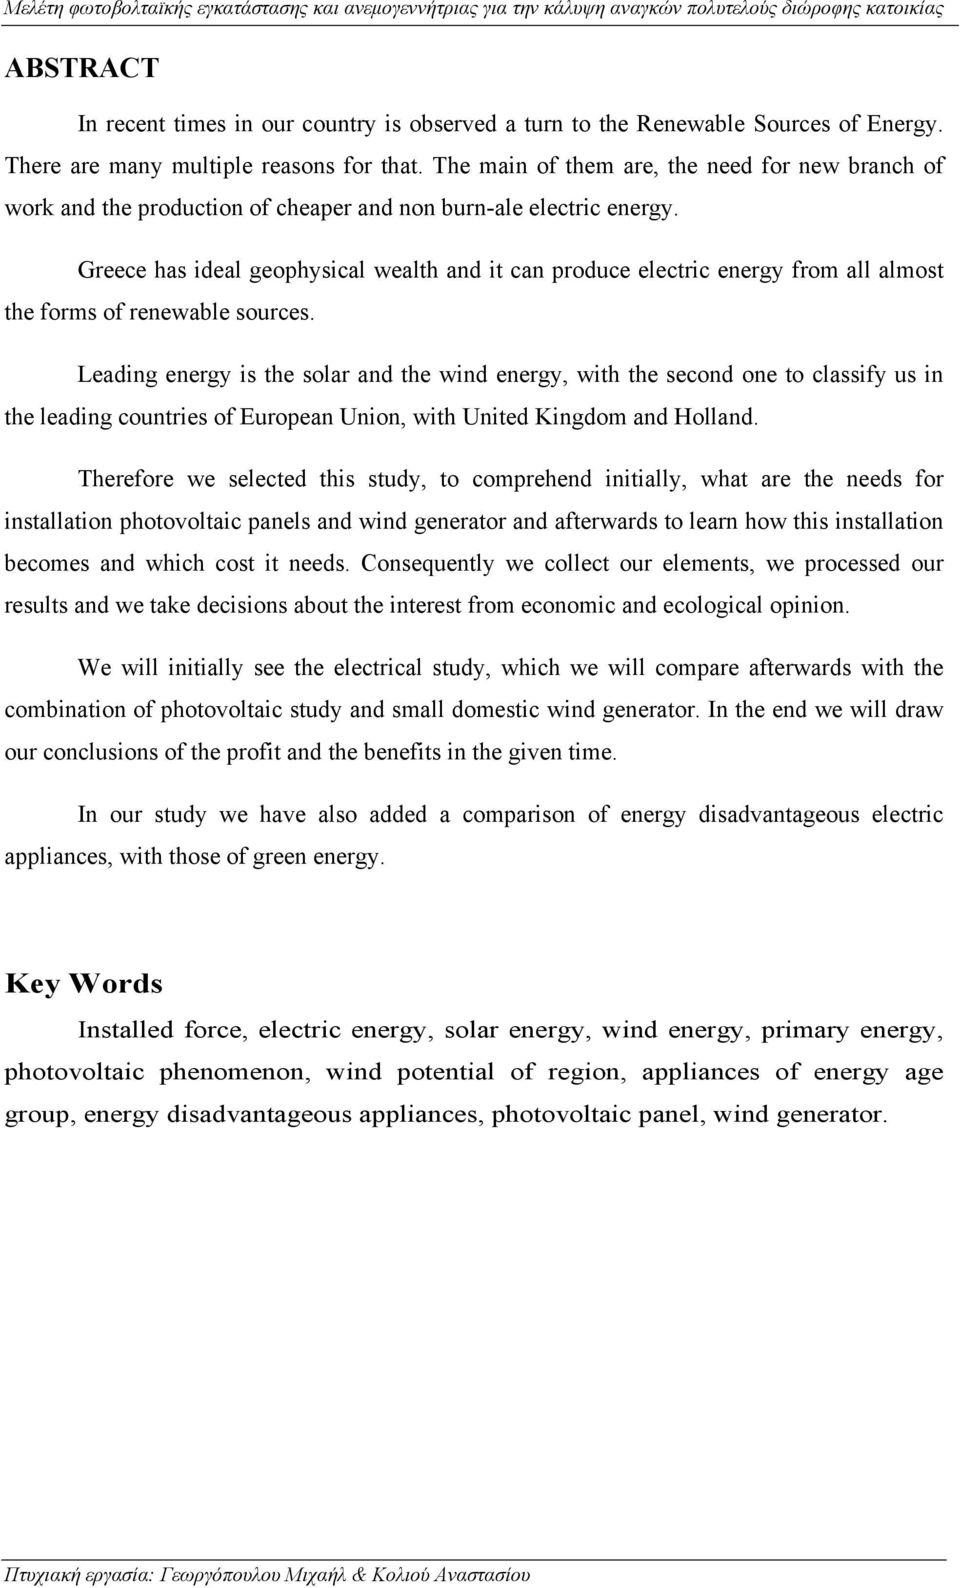 Greece has ideal geophysical wealth and it can produce electric energy from all almost the forms of renewable sources.